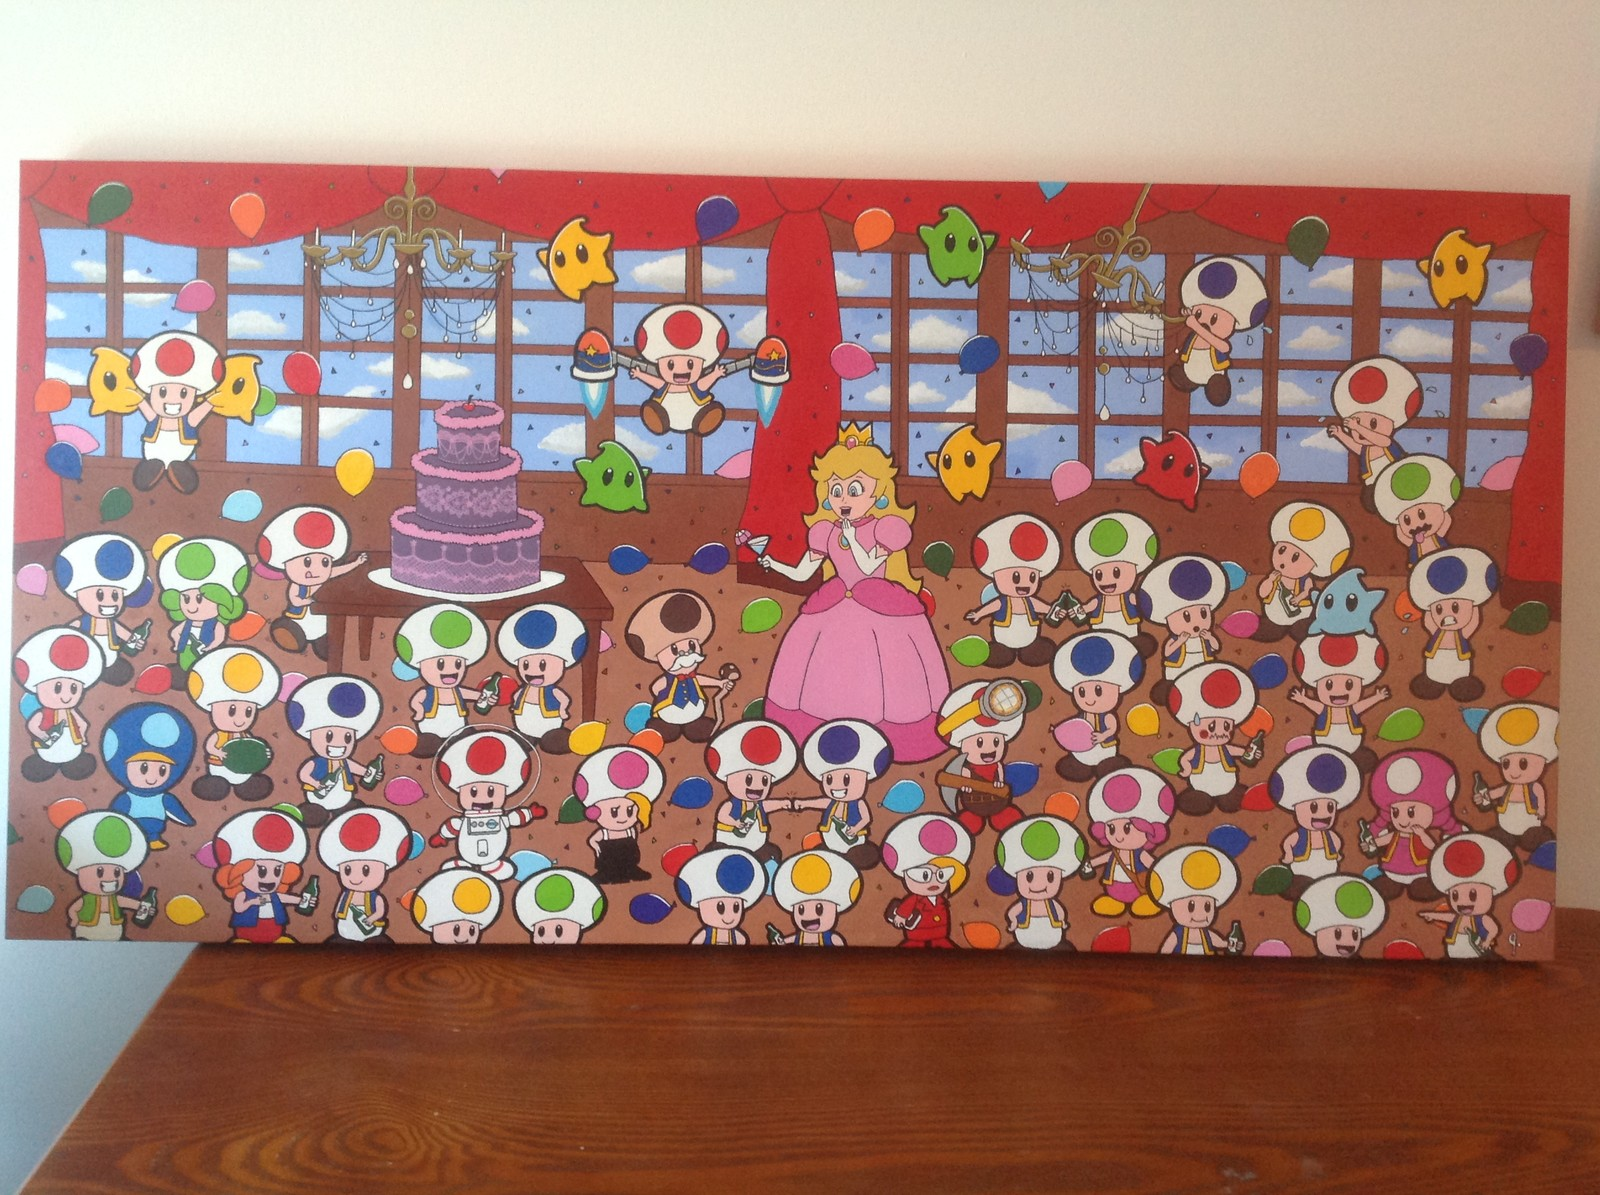 'Party in the Mushroom Kingdom' 24x48 canvas Status: Sold! (Requested)